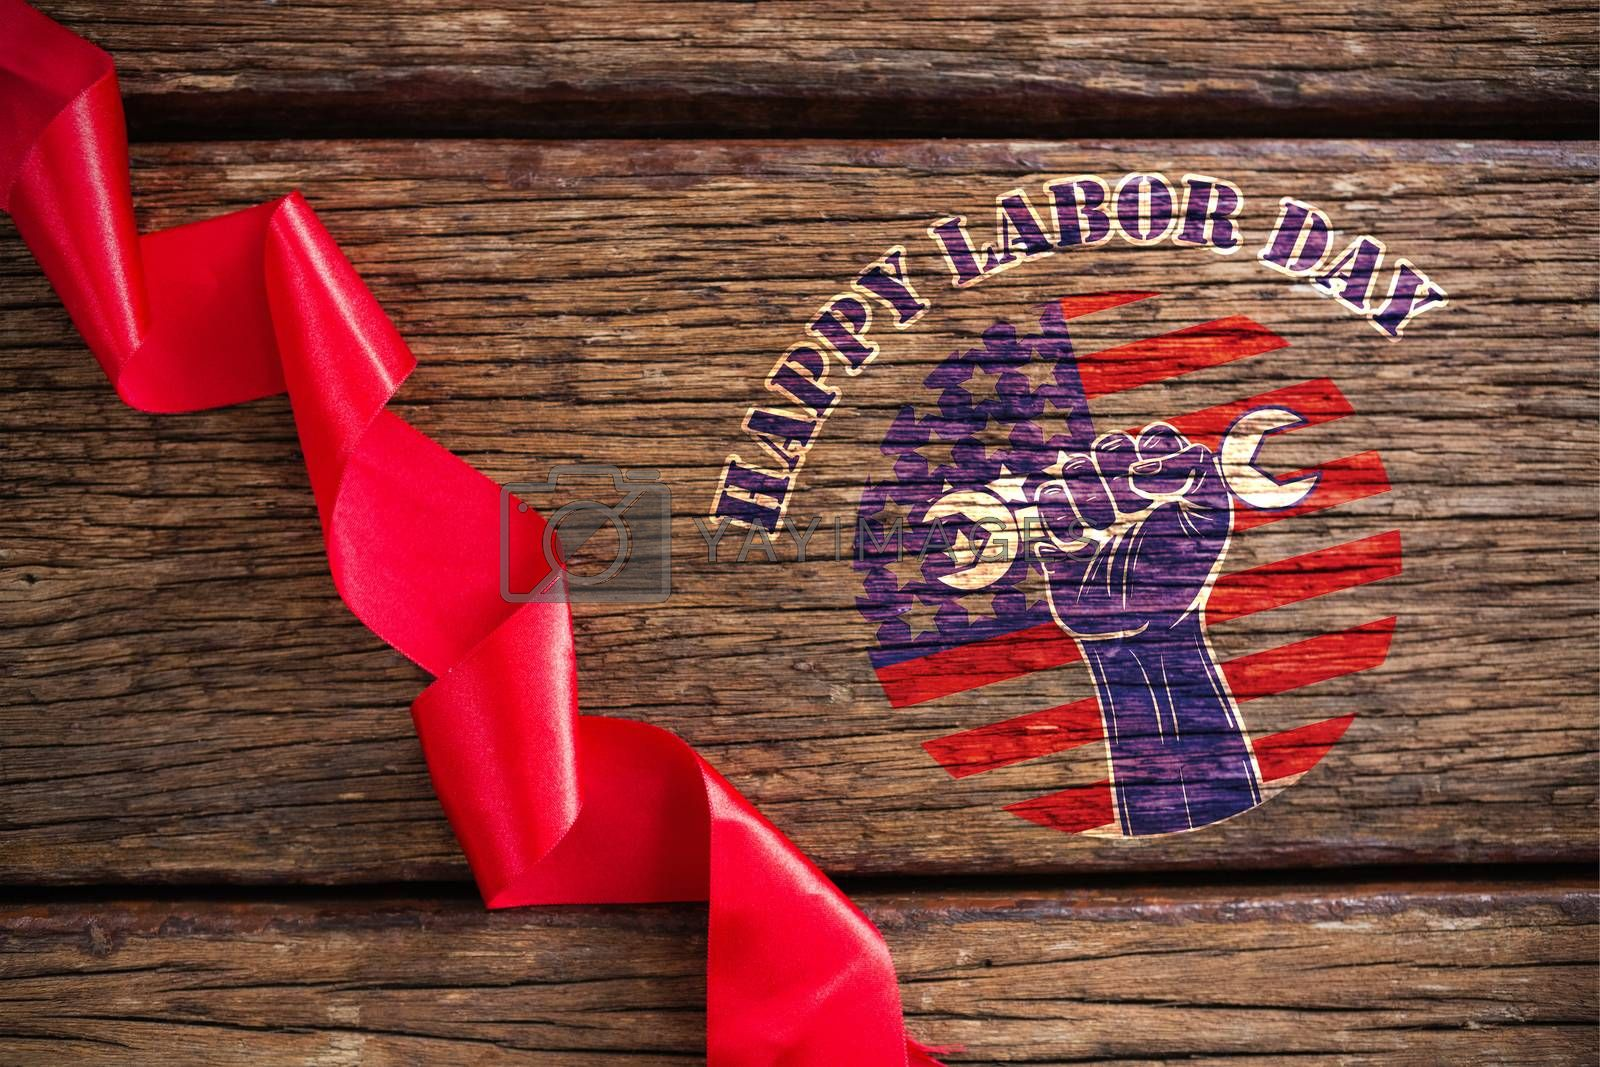 Composite image of happy labor day text over cropped hand holding tools by Wavebreakmedia